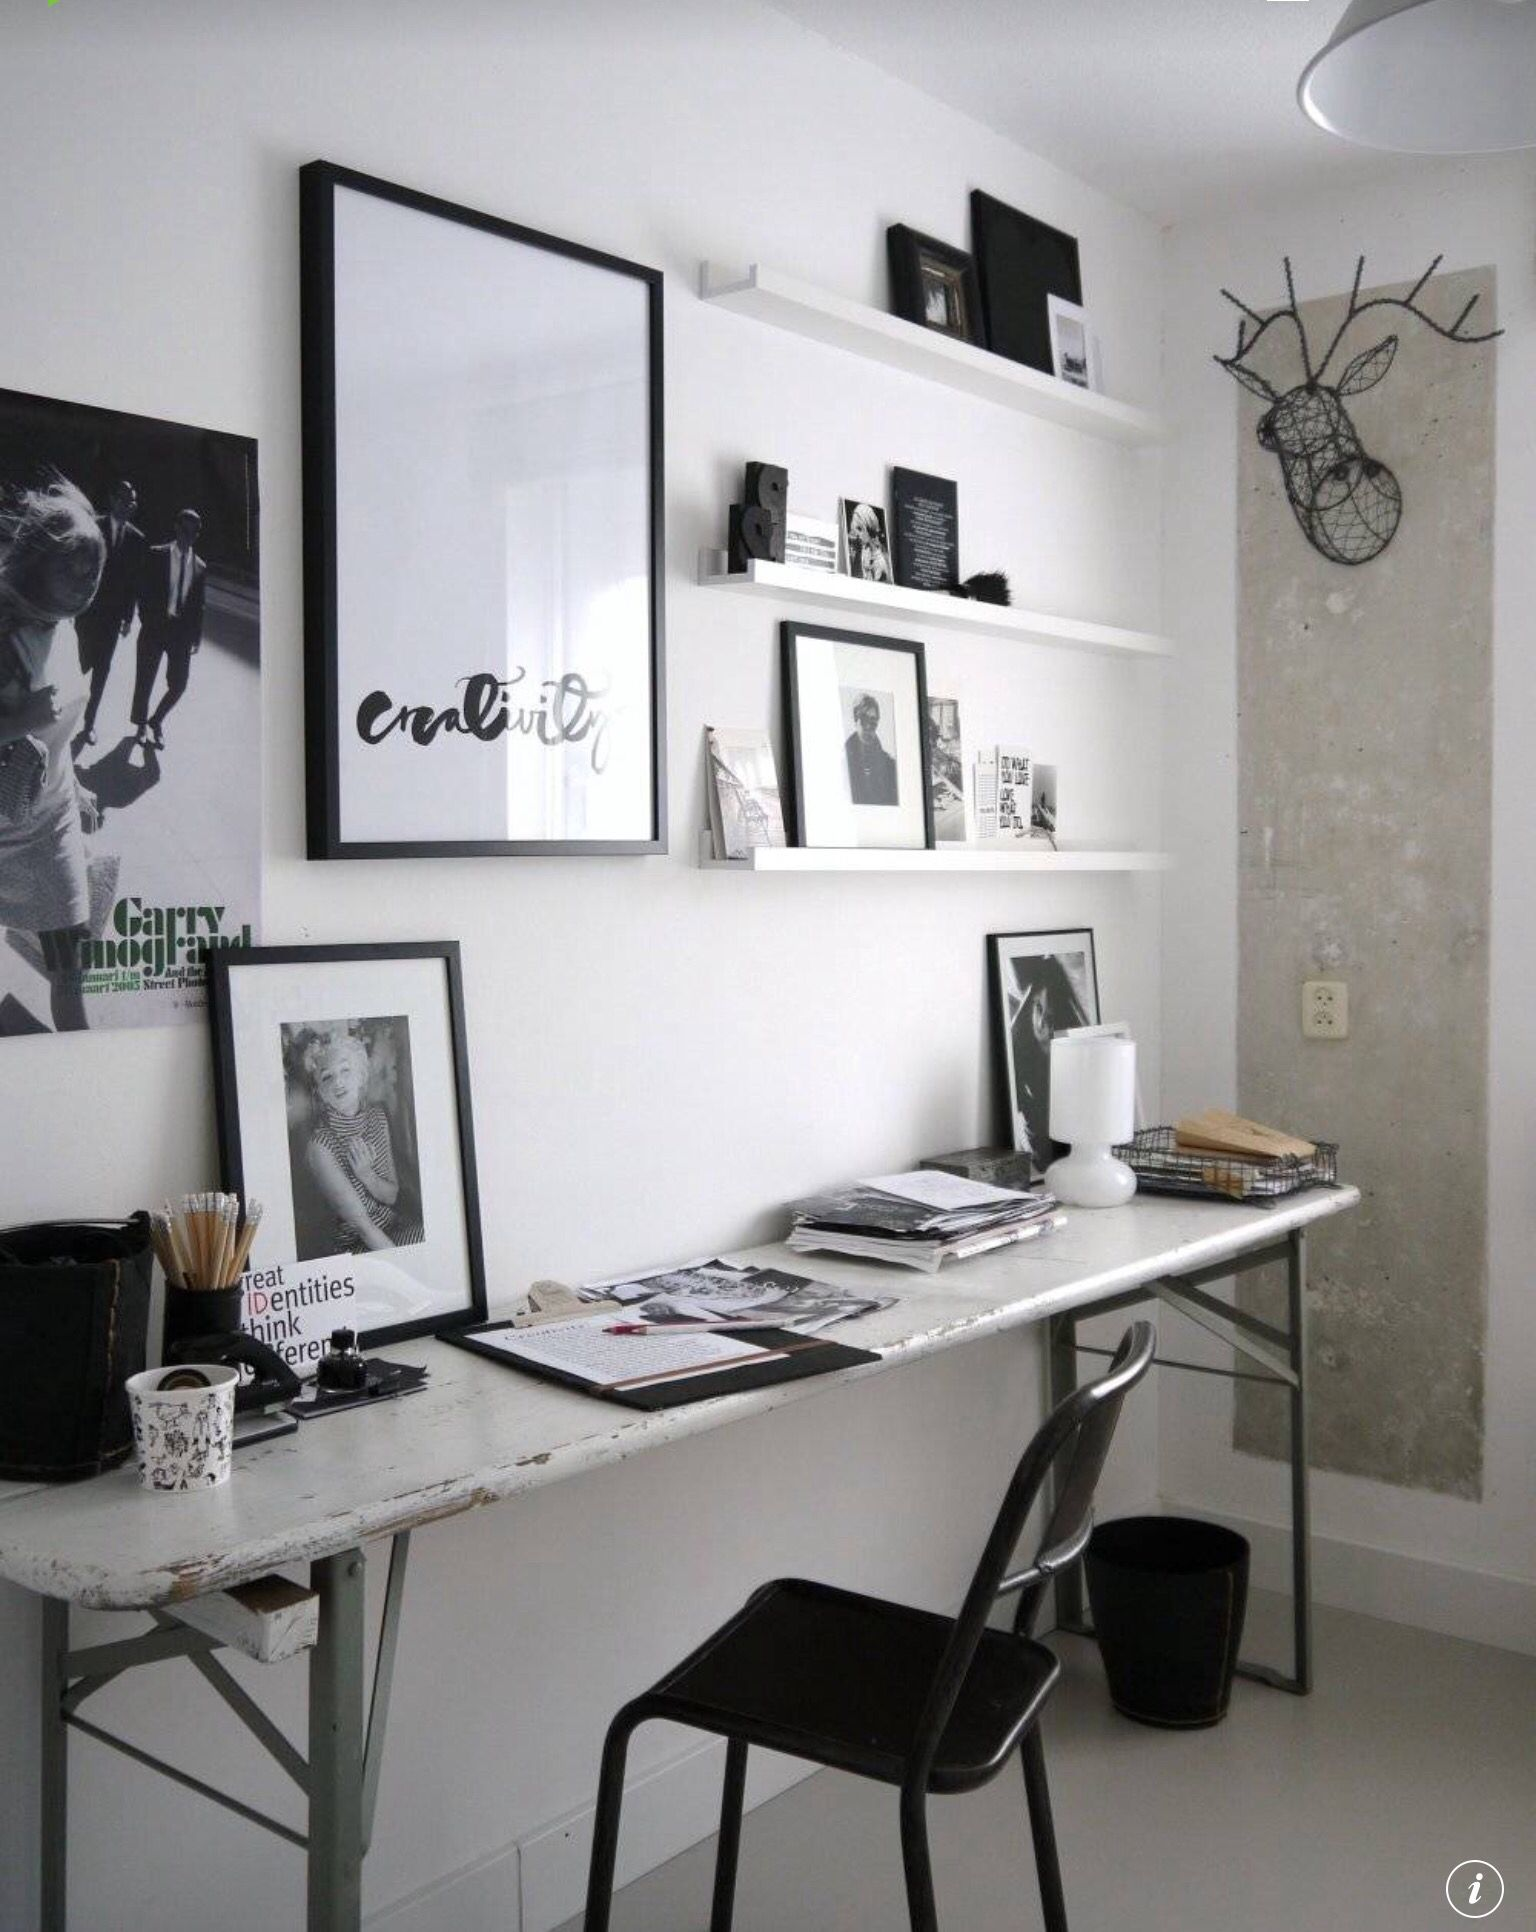 Pin by Chel B on Home Offices | Pinterest